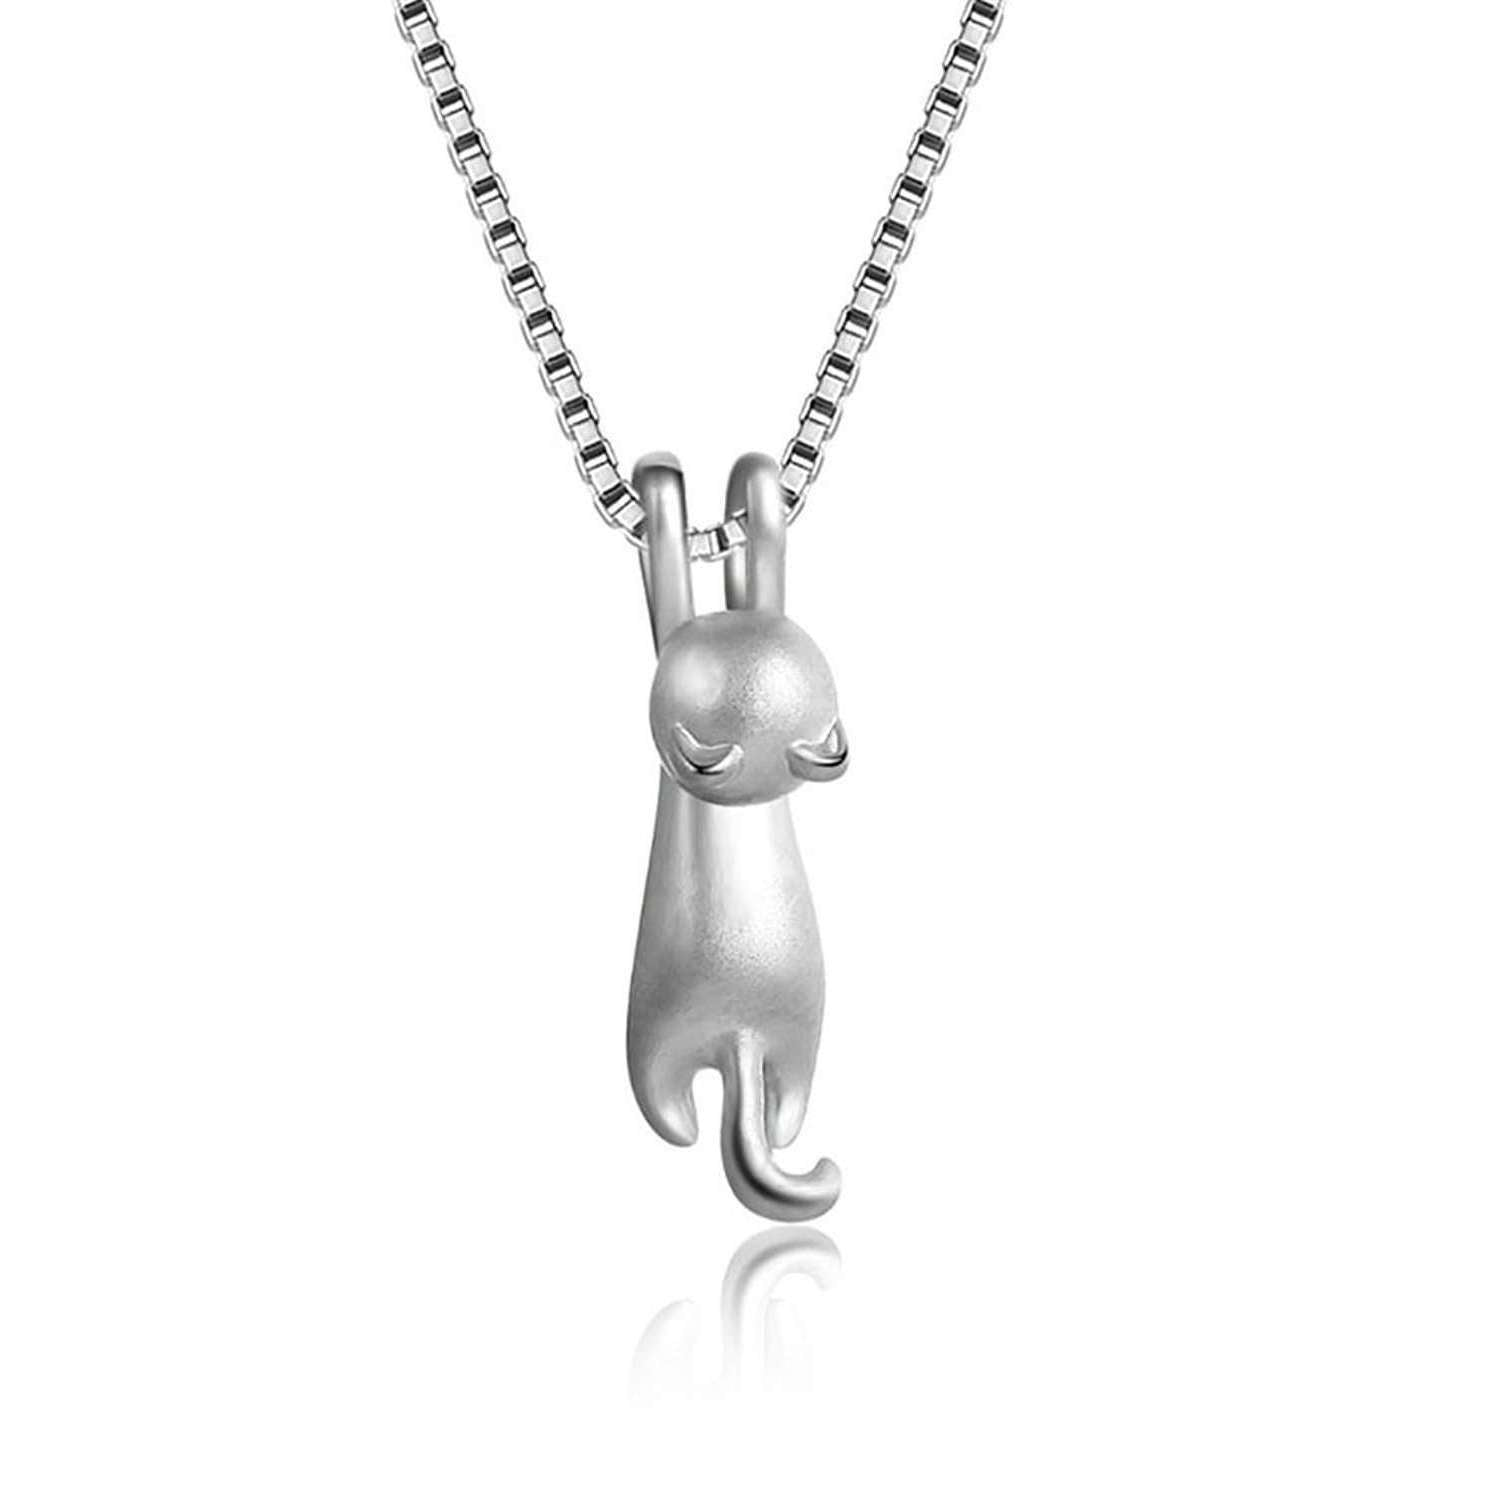 Collier chat suspendu en argent 925 - Granitée - Le chat Mallow